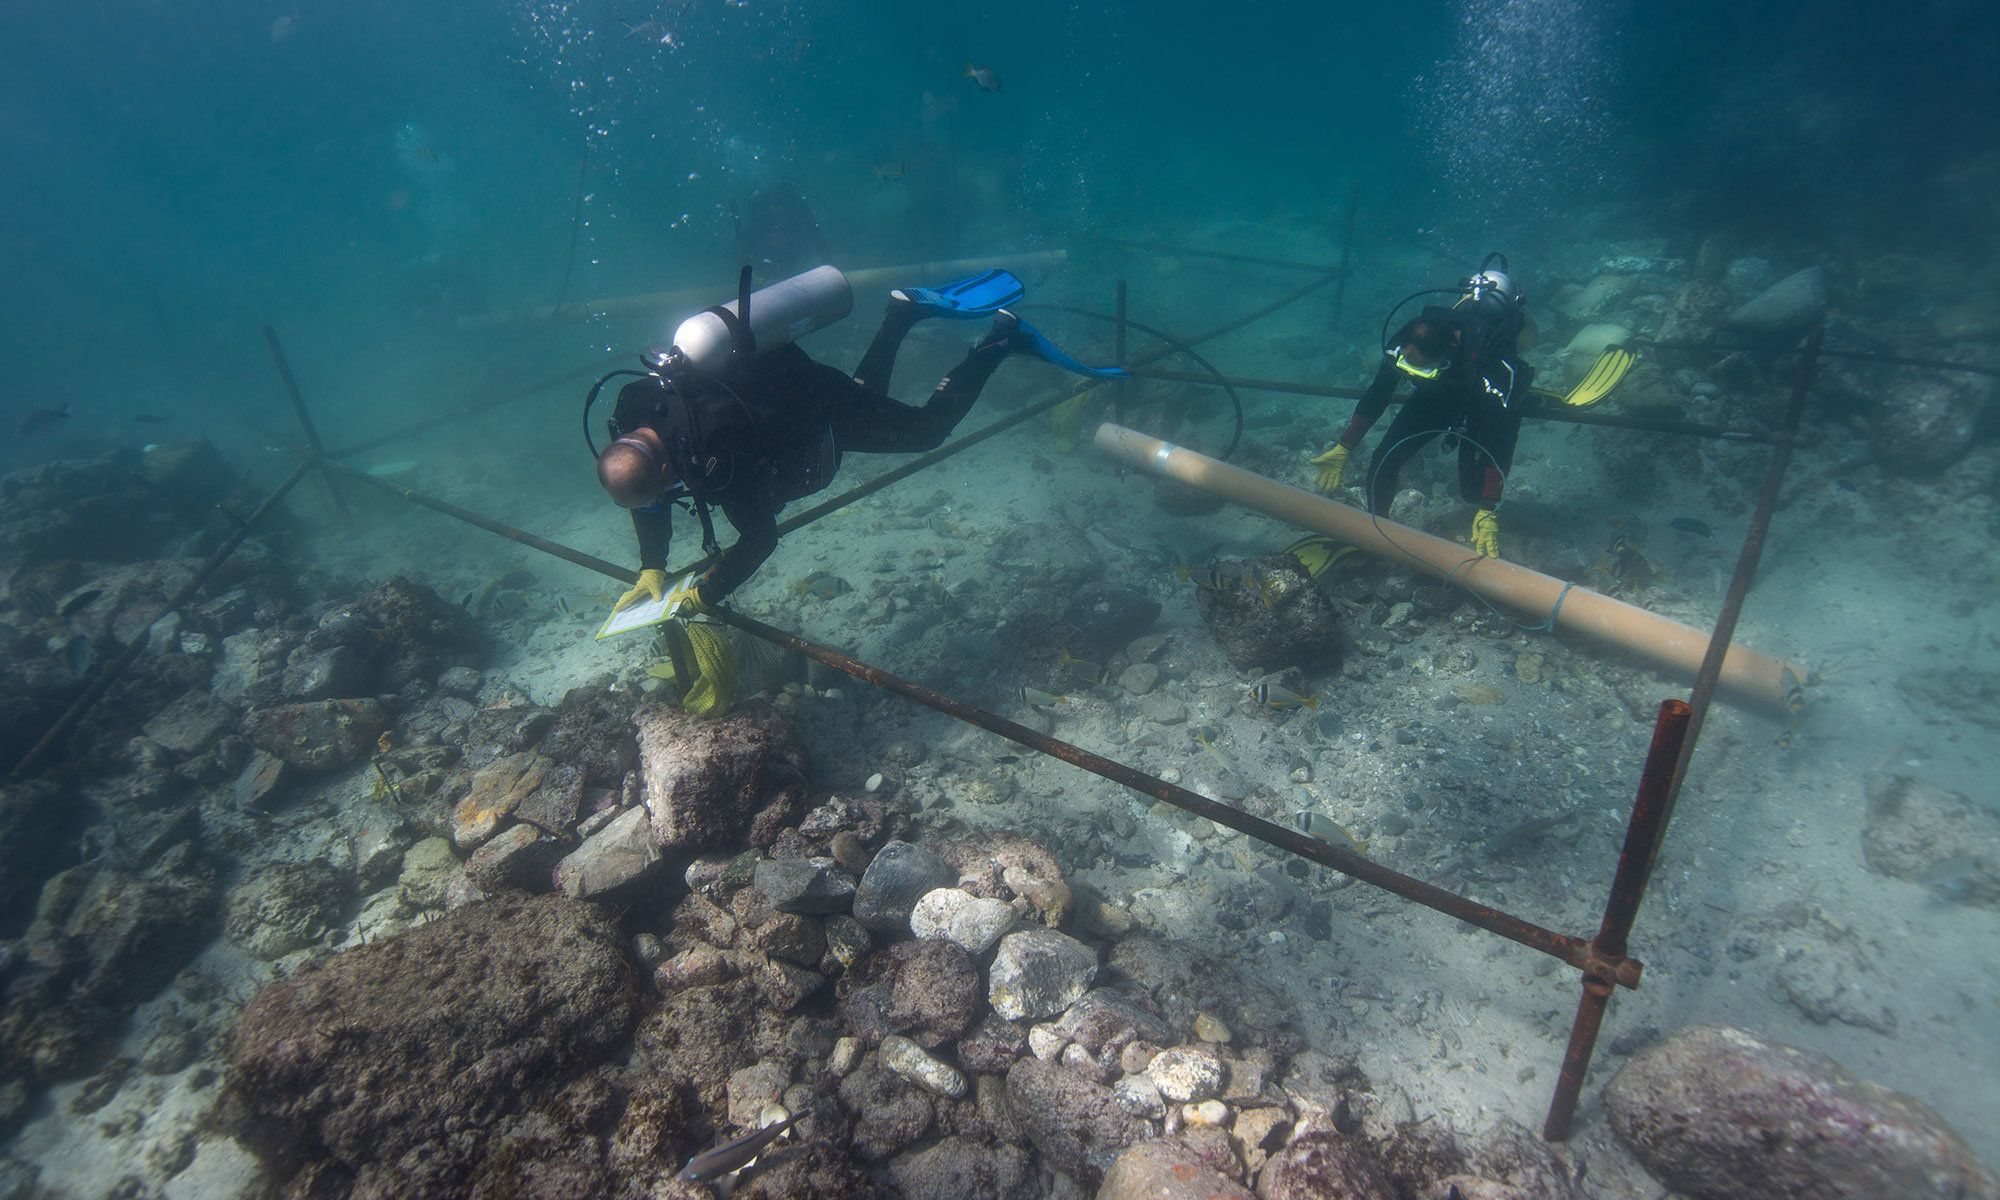 Vasco Playback Archeologists Discover Treasures In Vasco Da Gama Shipwreck Off